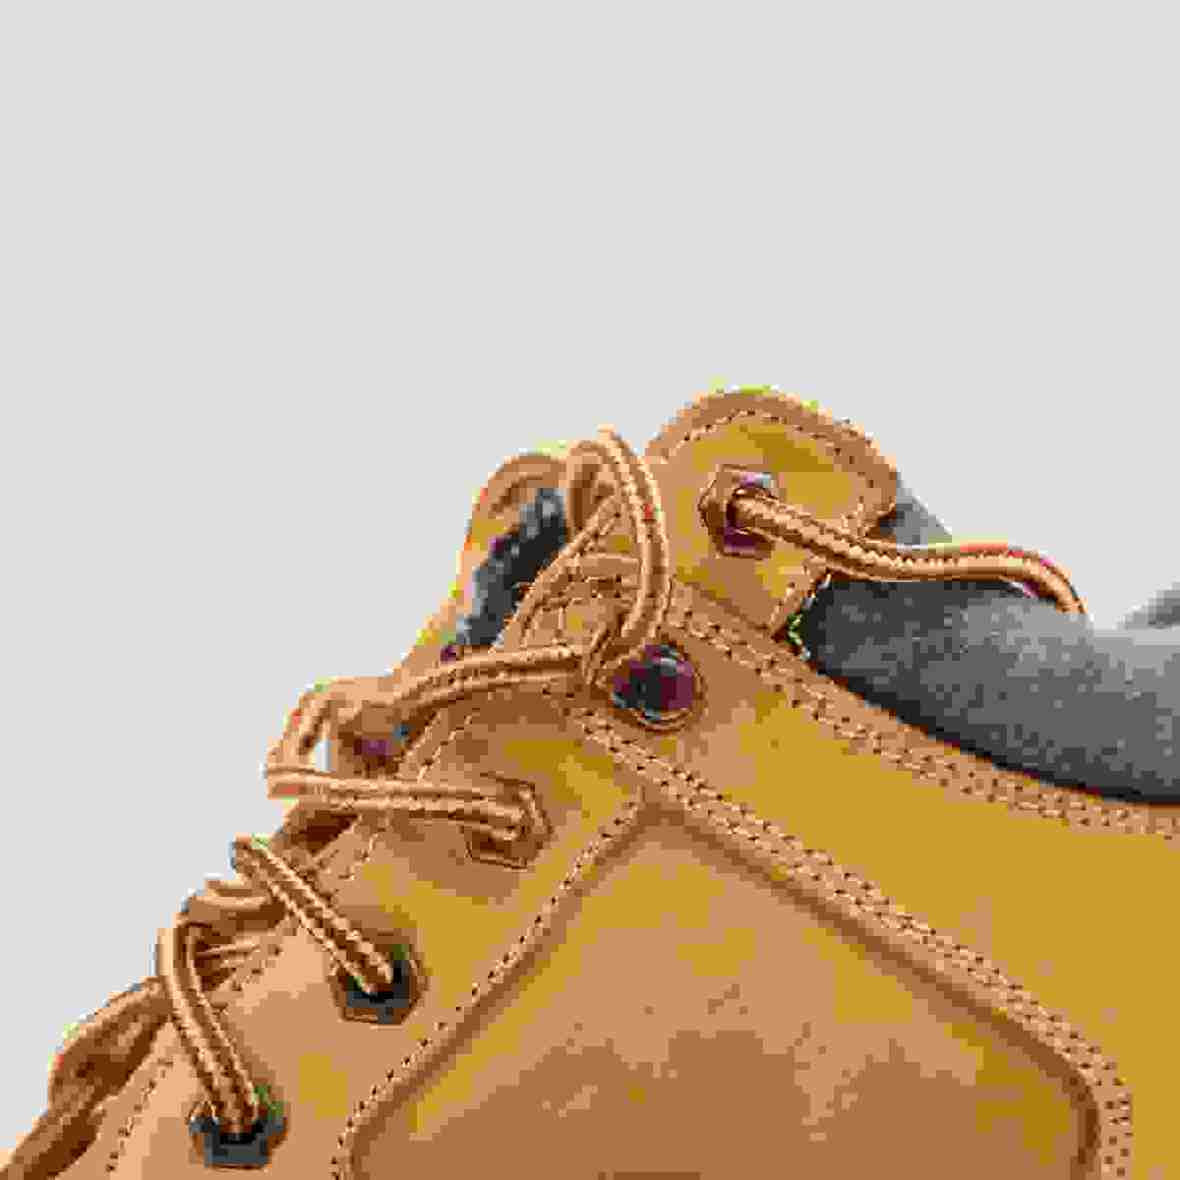 Tracking boots detail